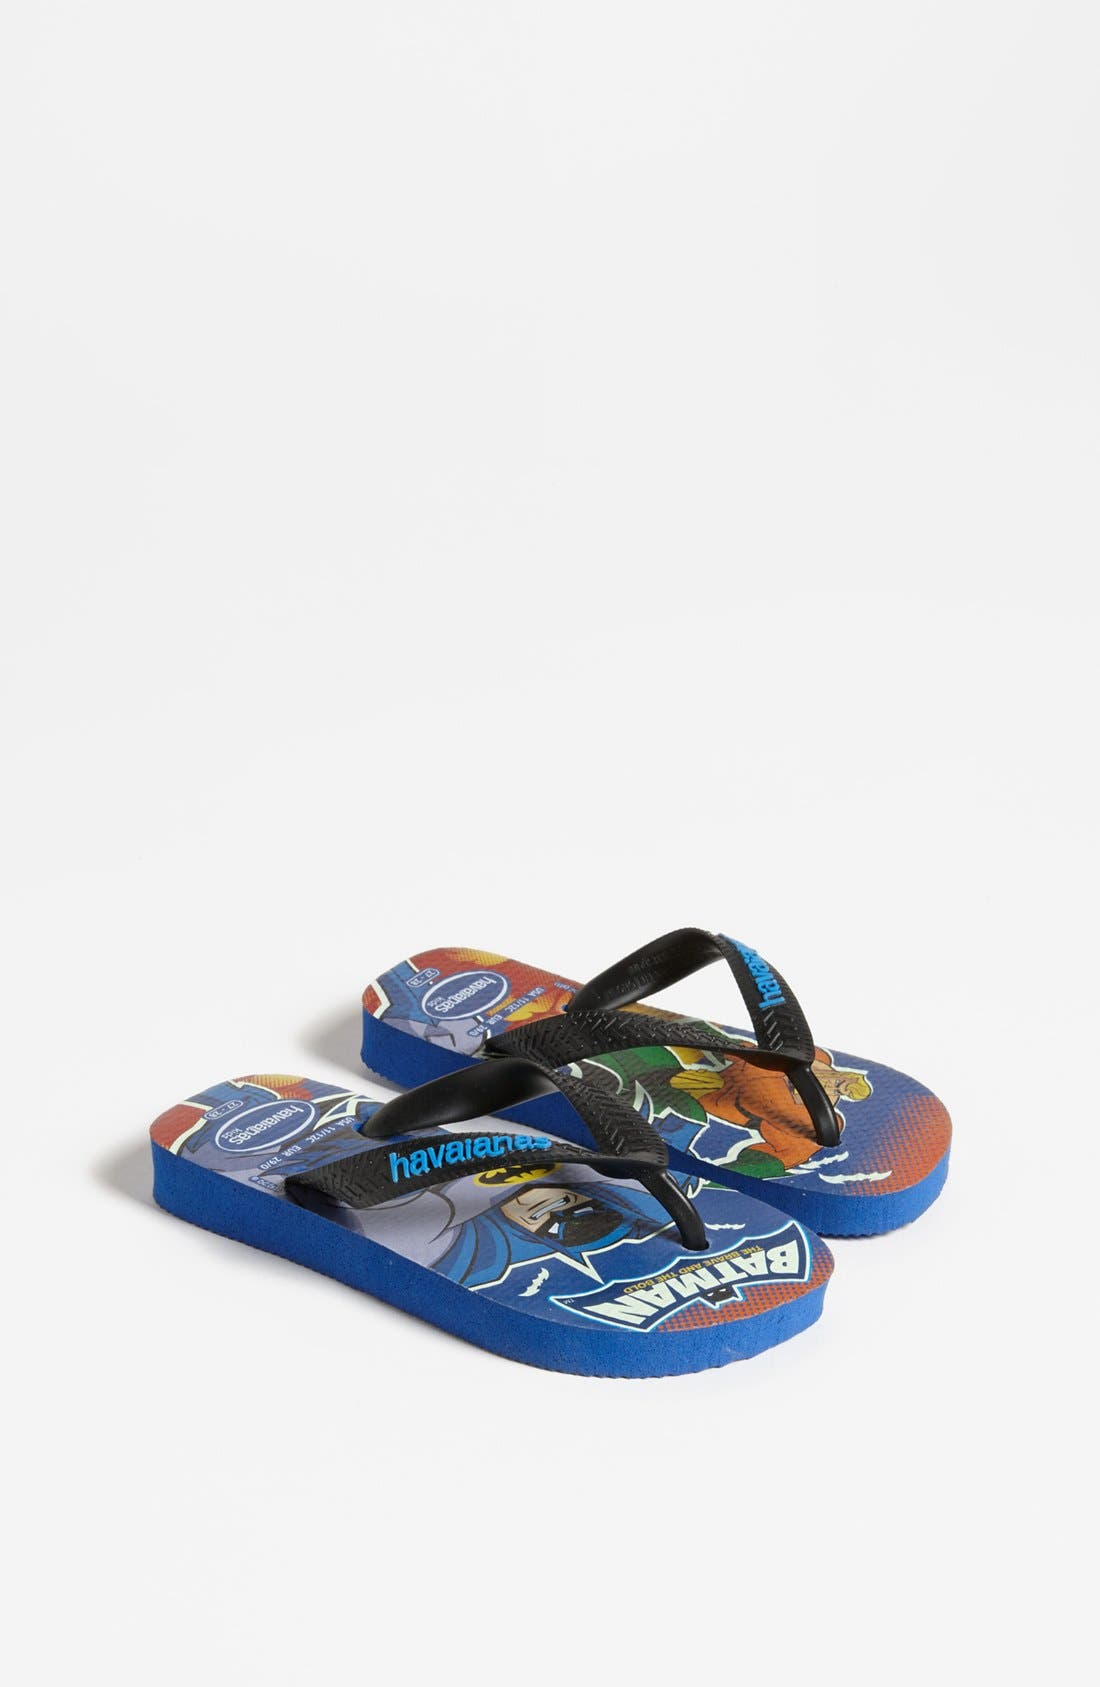 Main Image - Havaianas 'Kids Heroes' Flip Flop (Toddler & Little Kid)